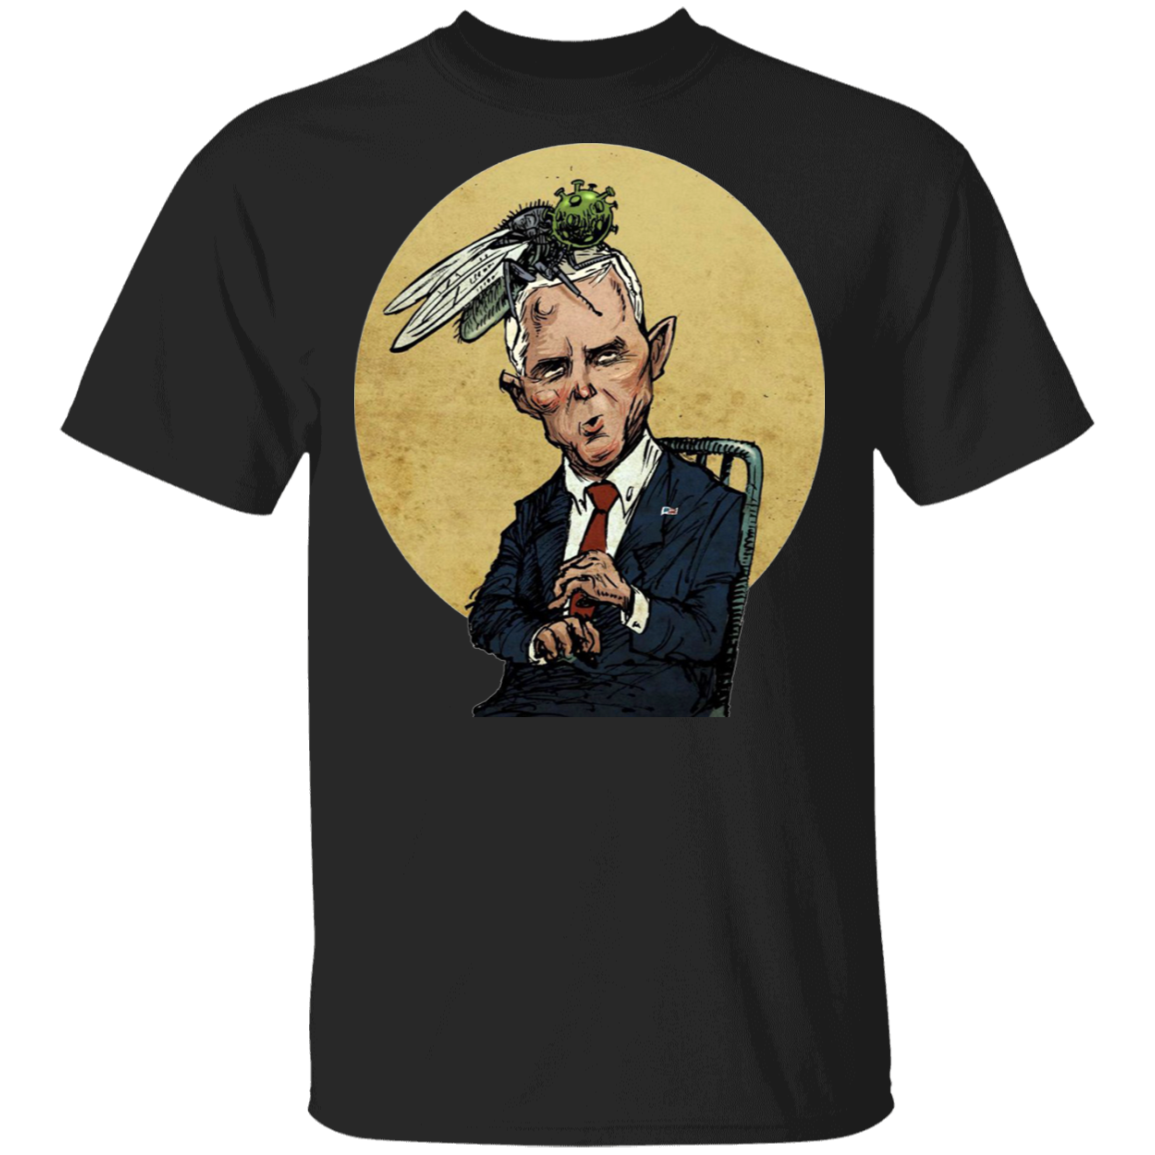 Pretty Fly For A White Guy Meme Shirt Pence Fly T-Shirt Vote Biden Harris 2020 Merch